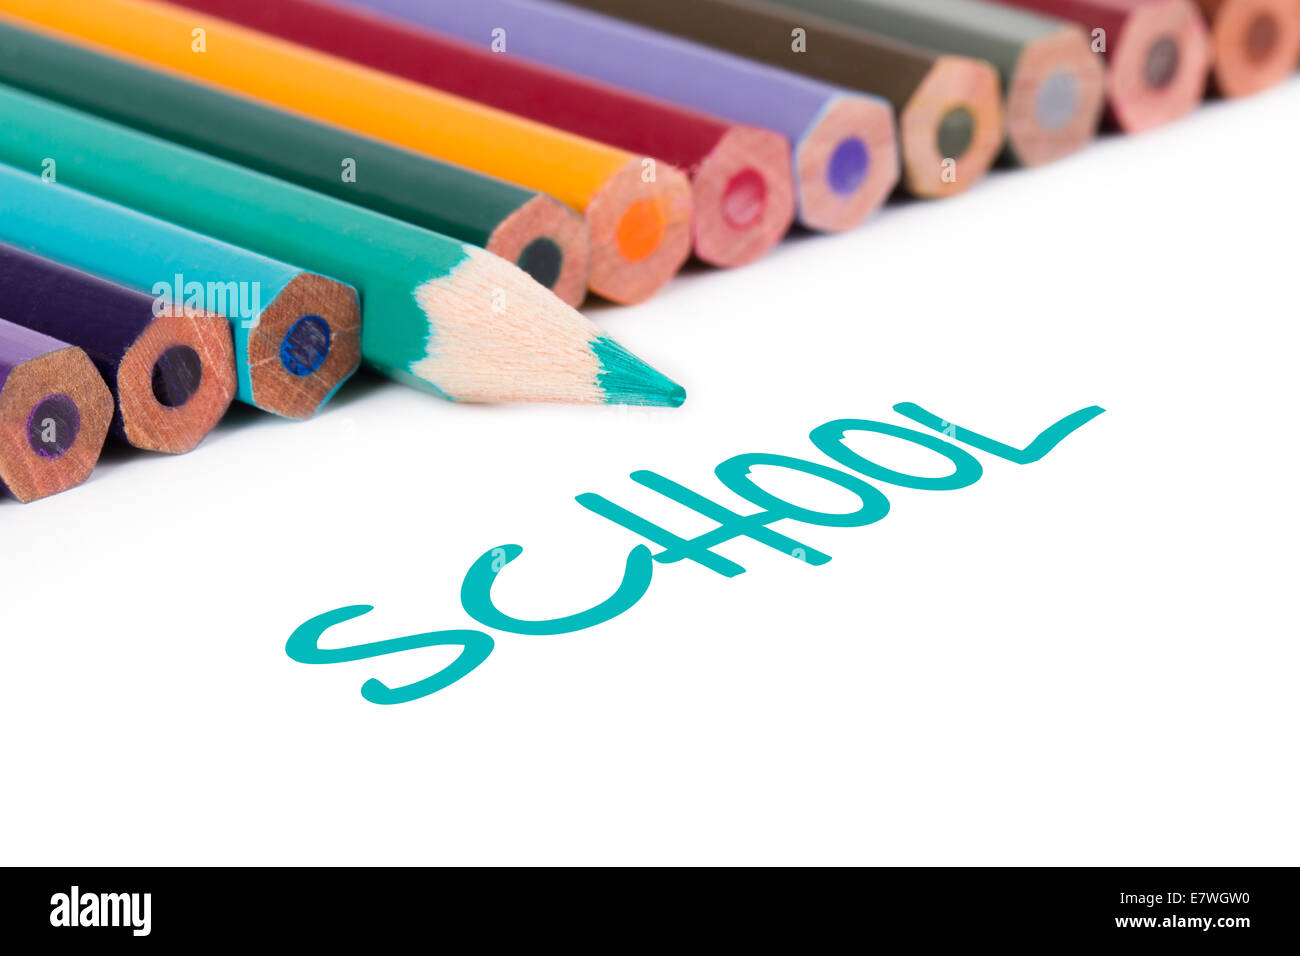 Colorful pencils with school text, isolated on white background. - Stock Image